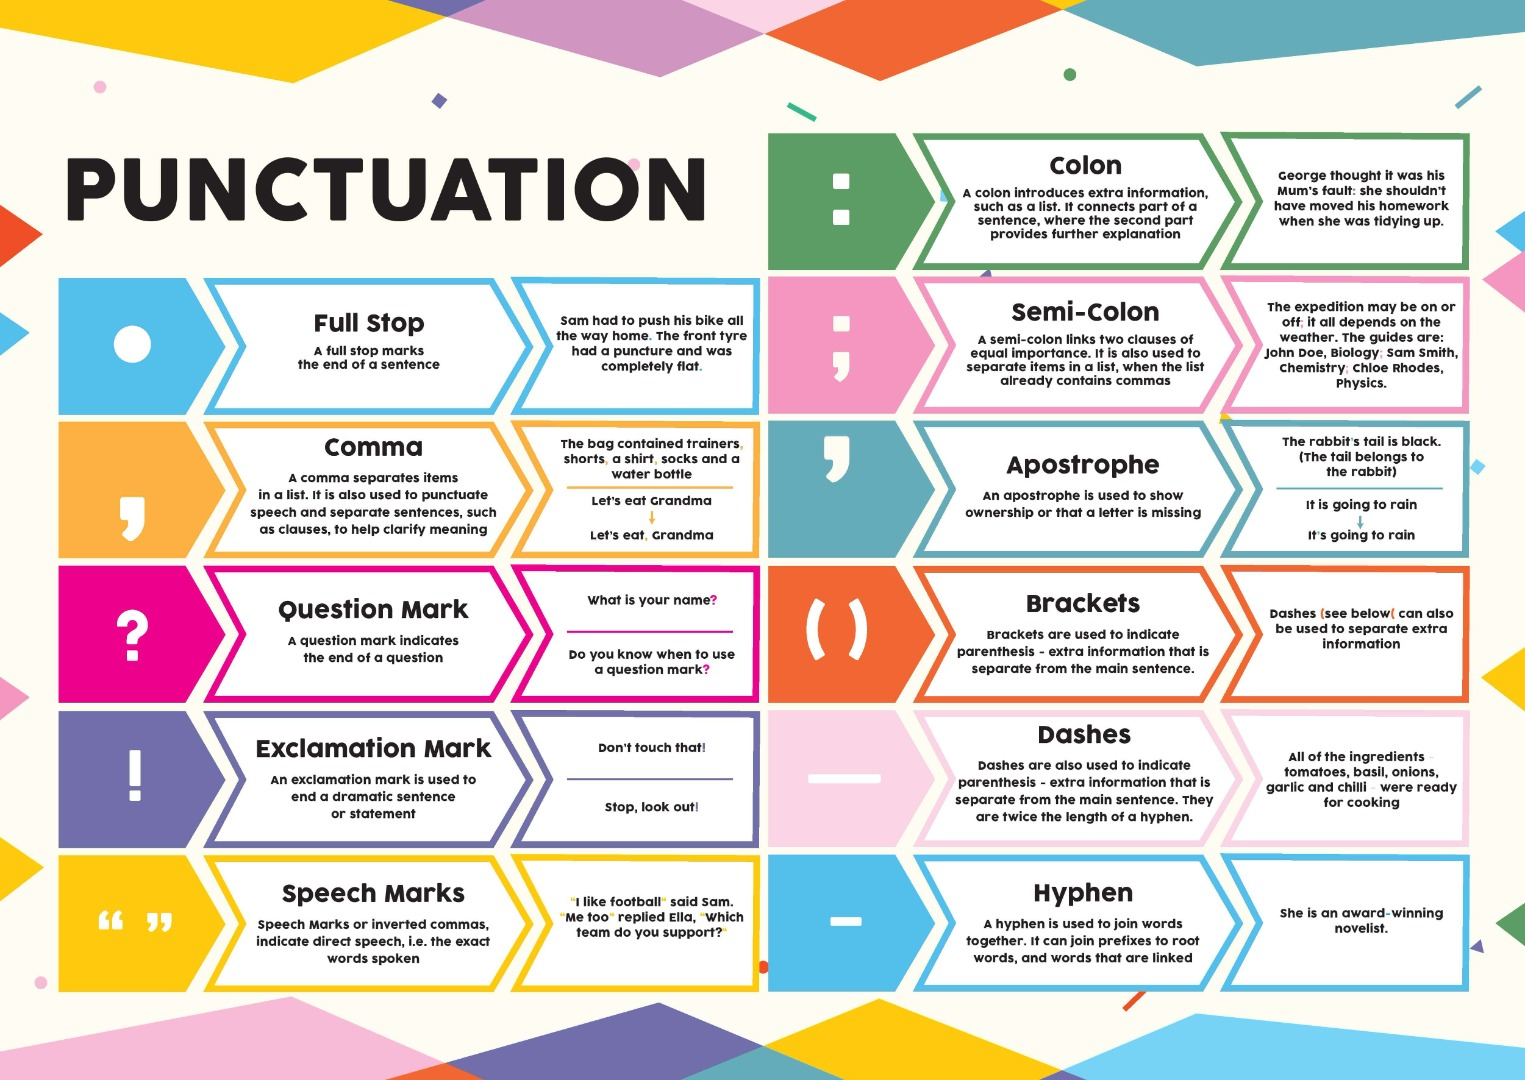 cream, pink and yellow poster showing different uses of punctuation